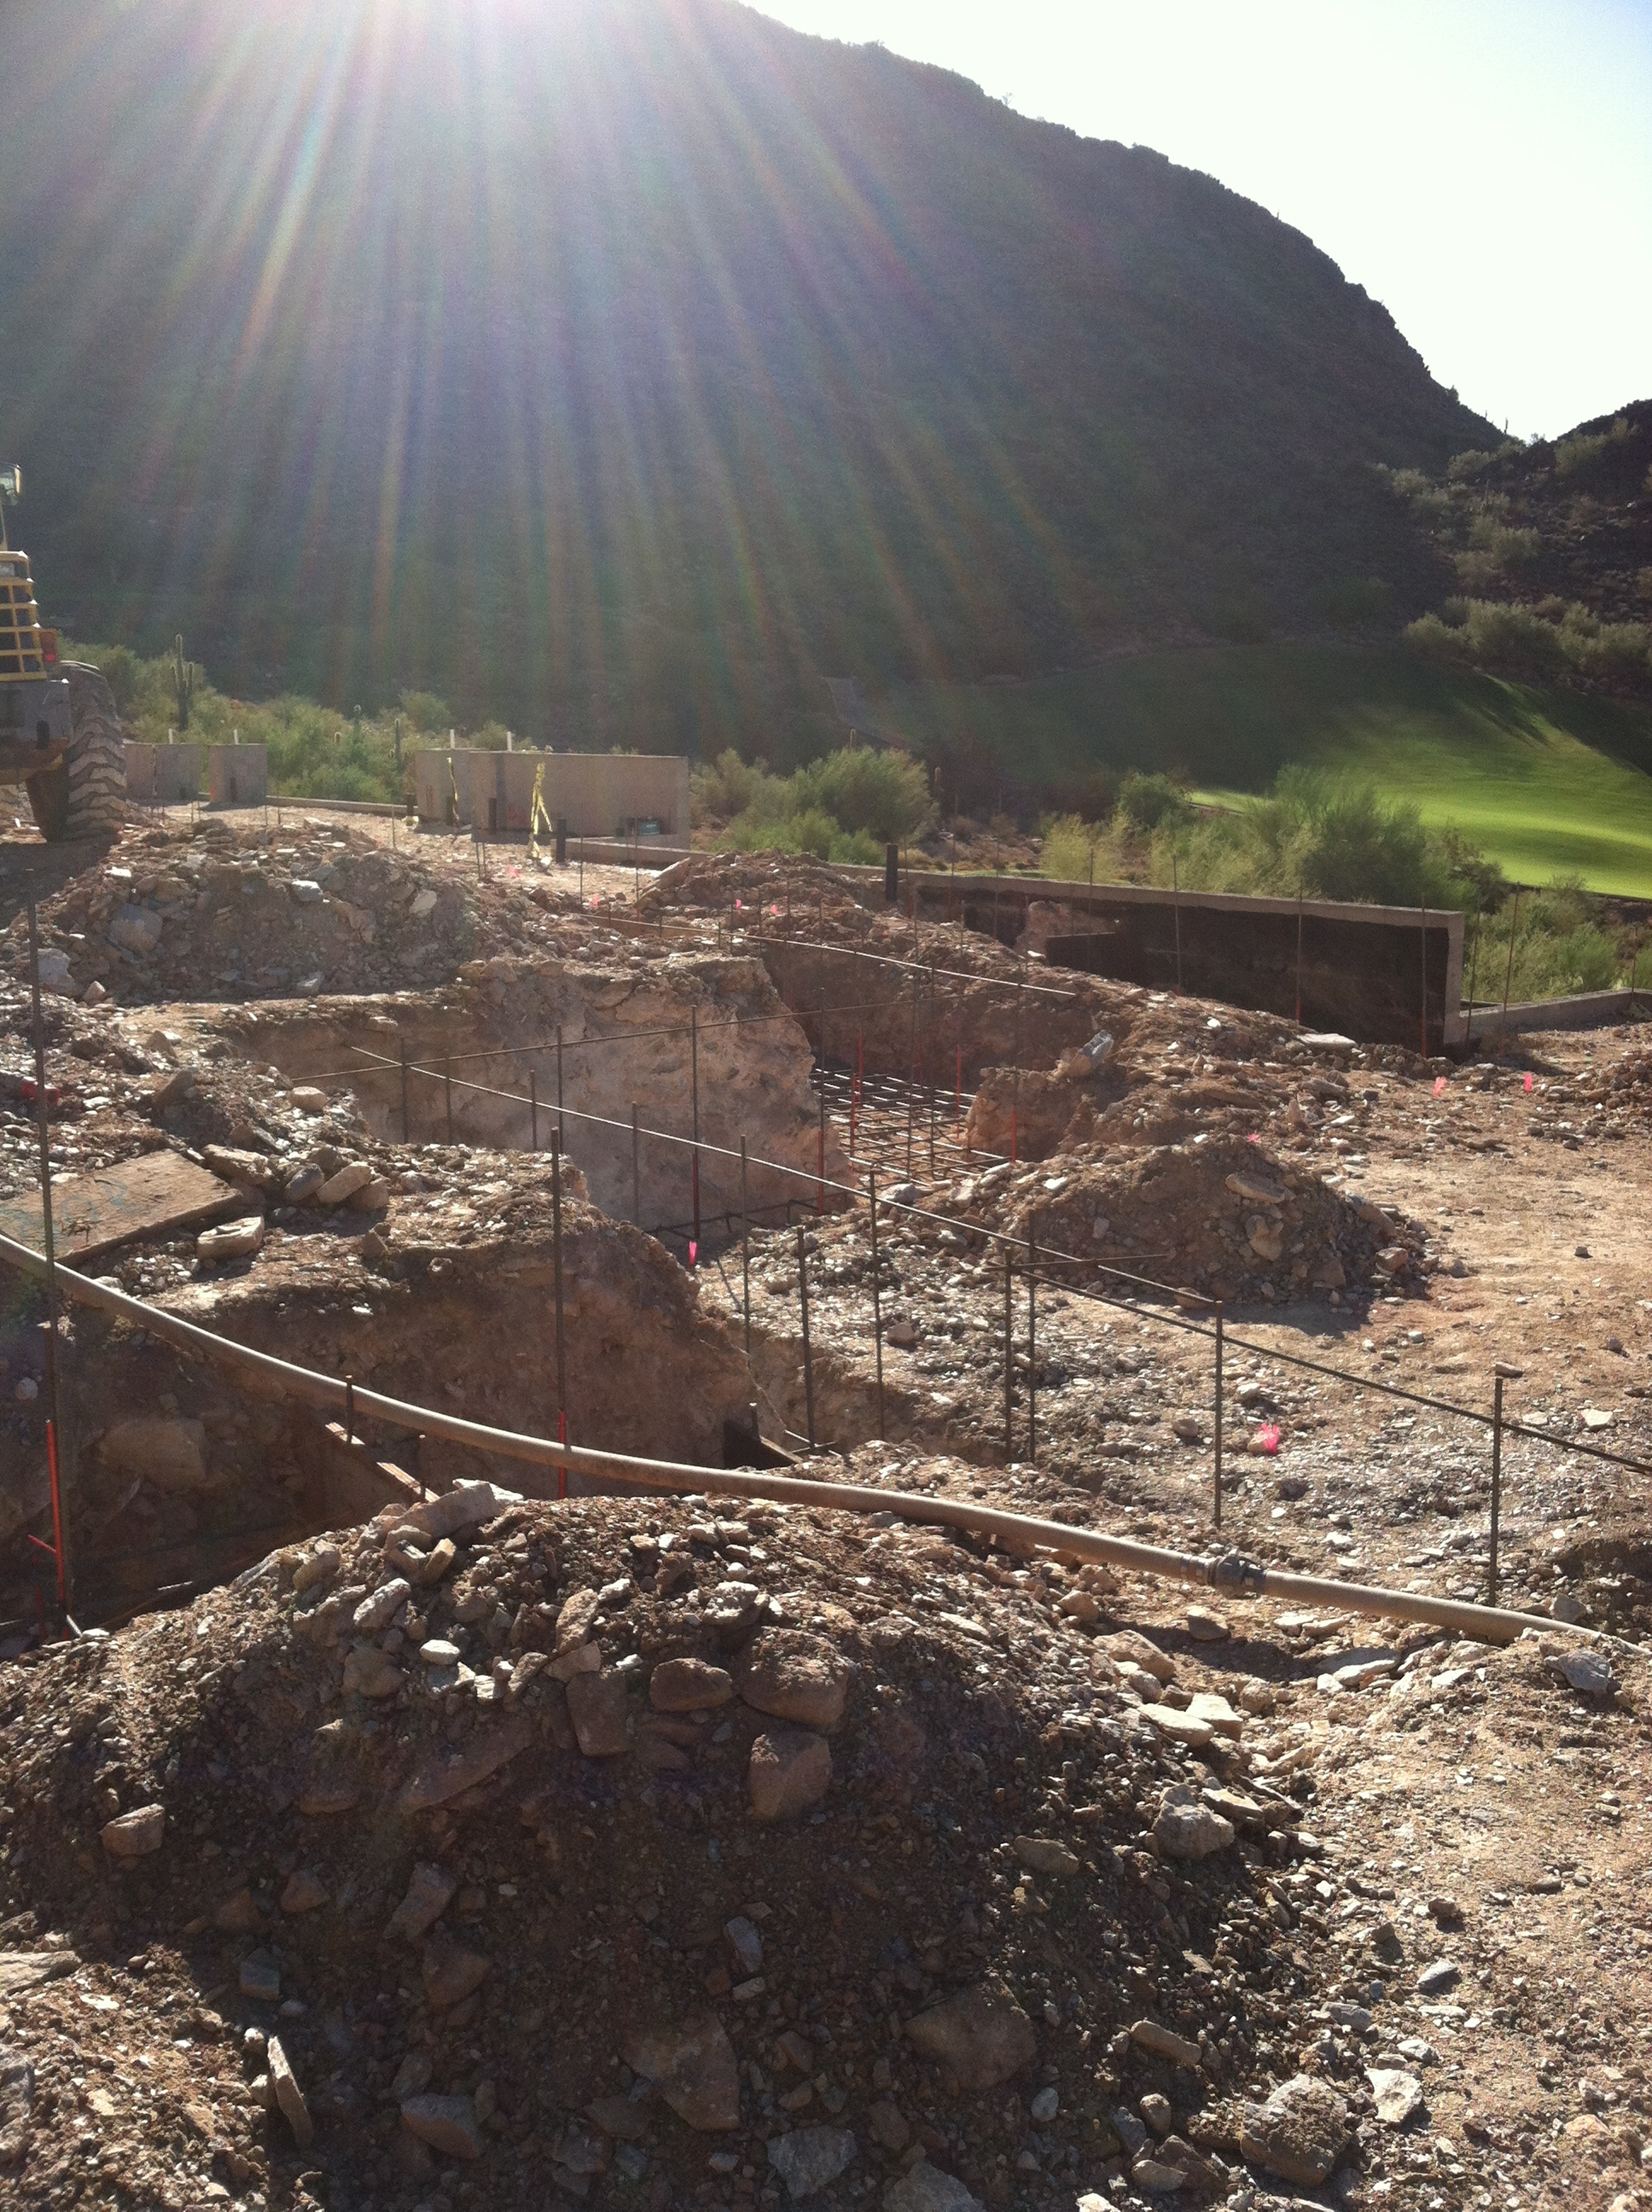 The DC Ranch golf course and towering mountain will become gorgeous views from the home.